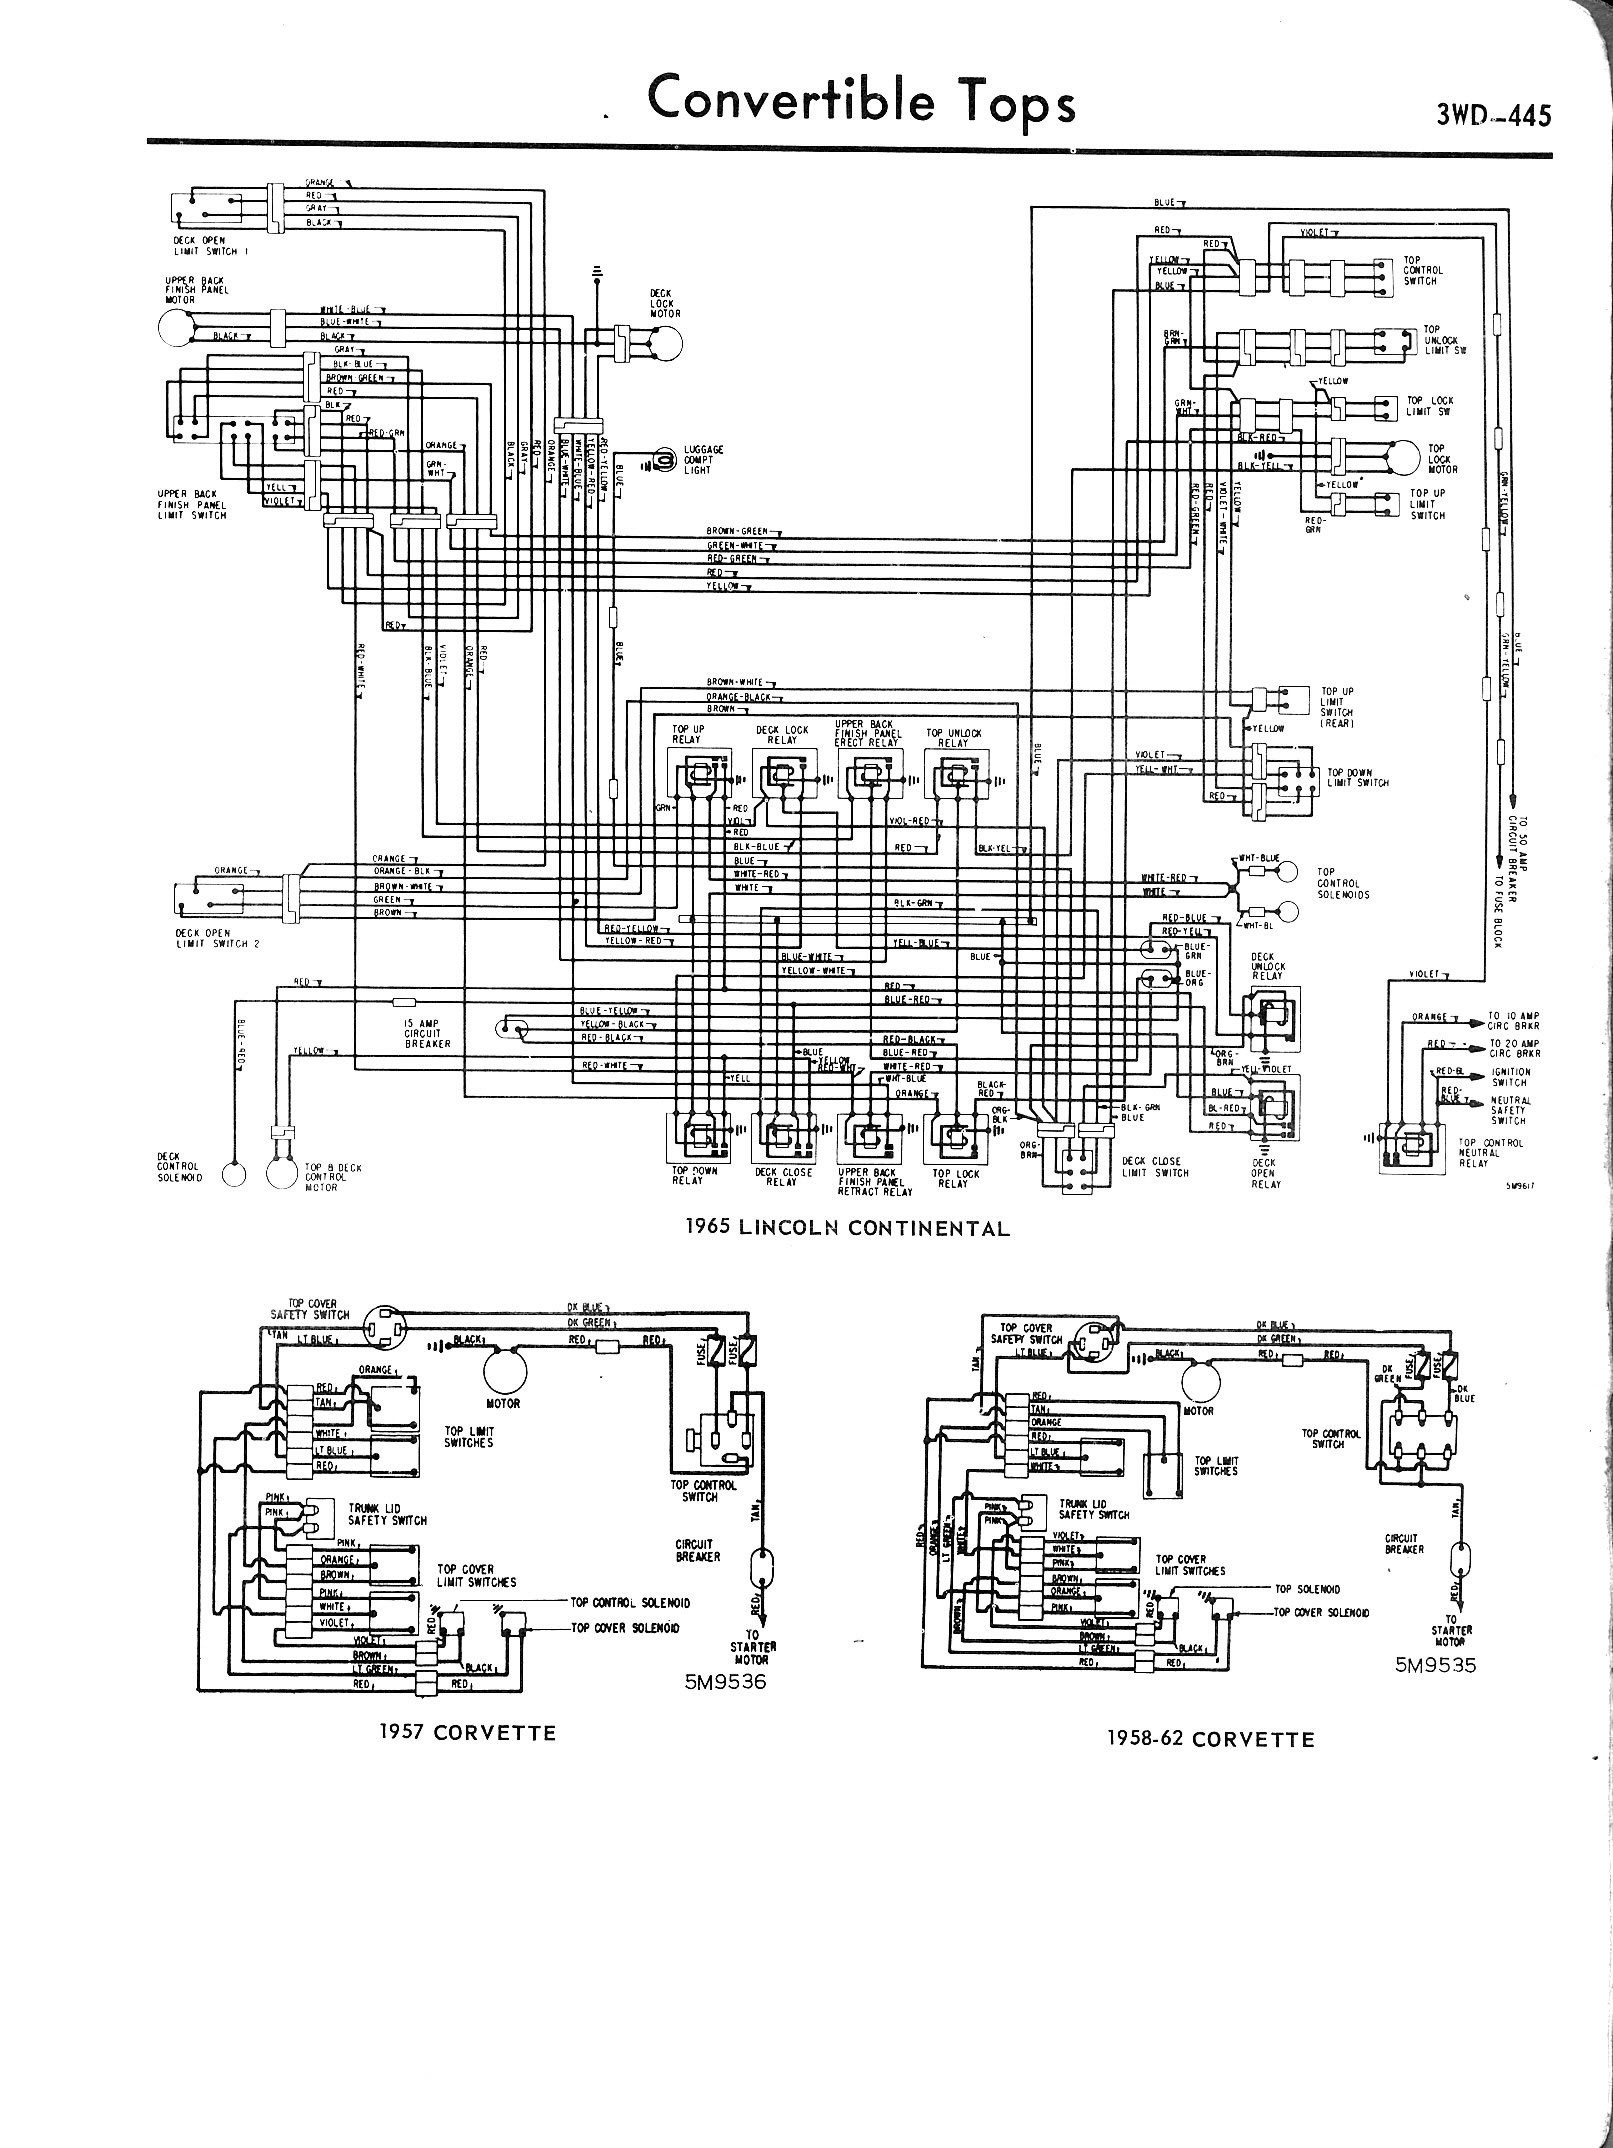 57 chevy convertible top wiring product wiring diagrams u2022 rh genesisventures us